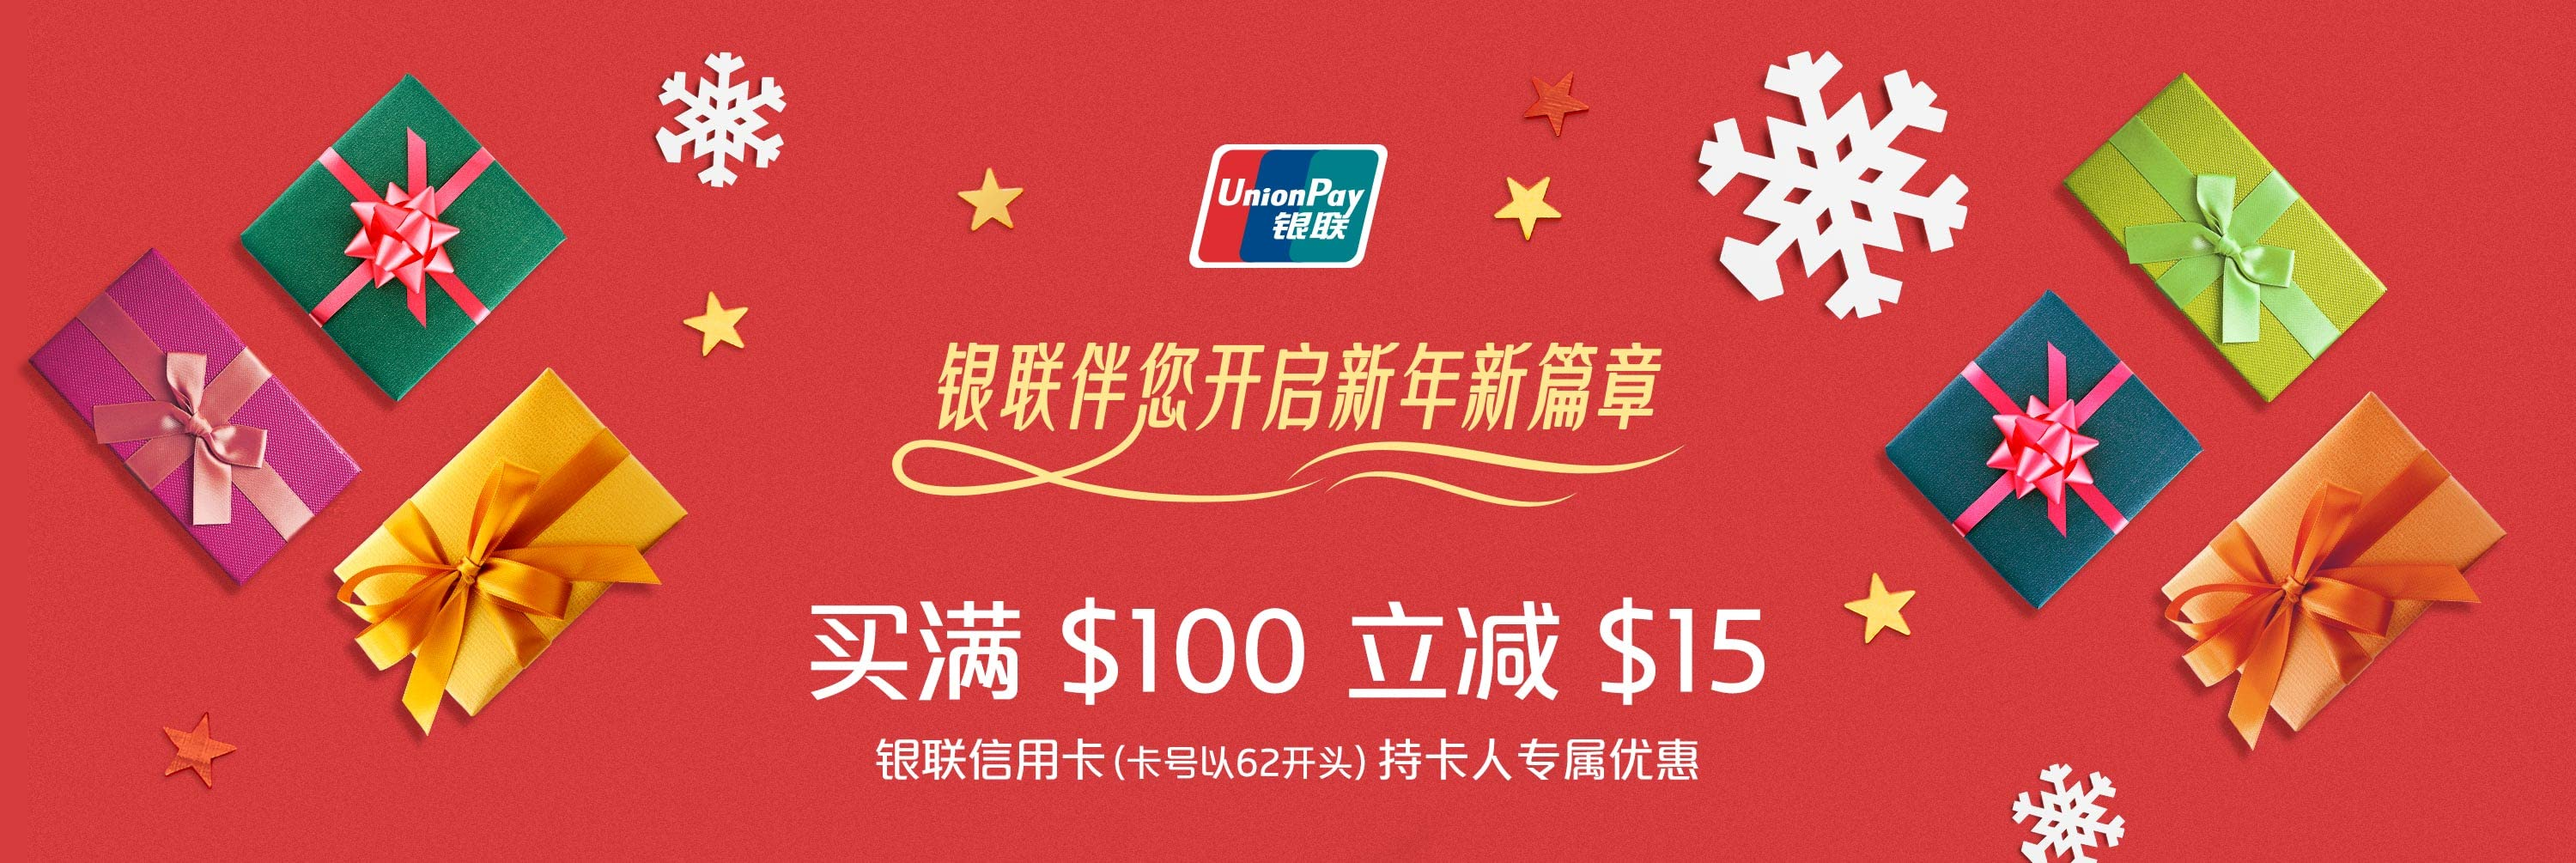 UnionPay. Start the new year your way.